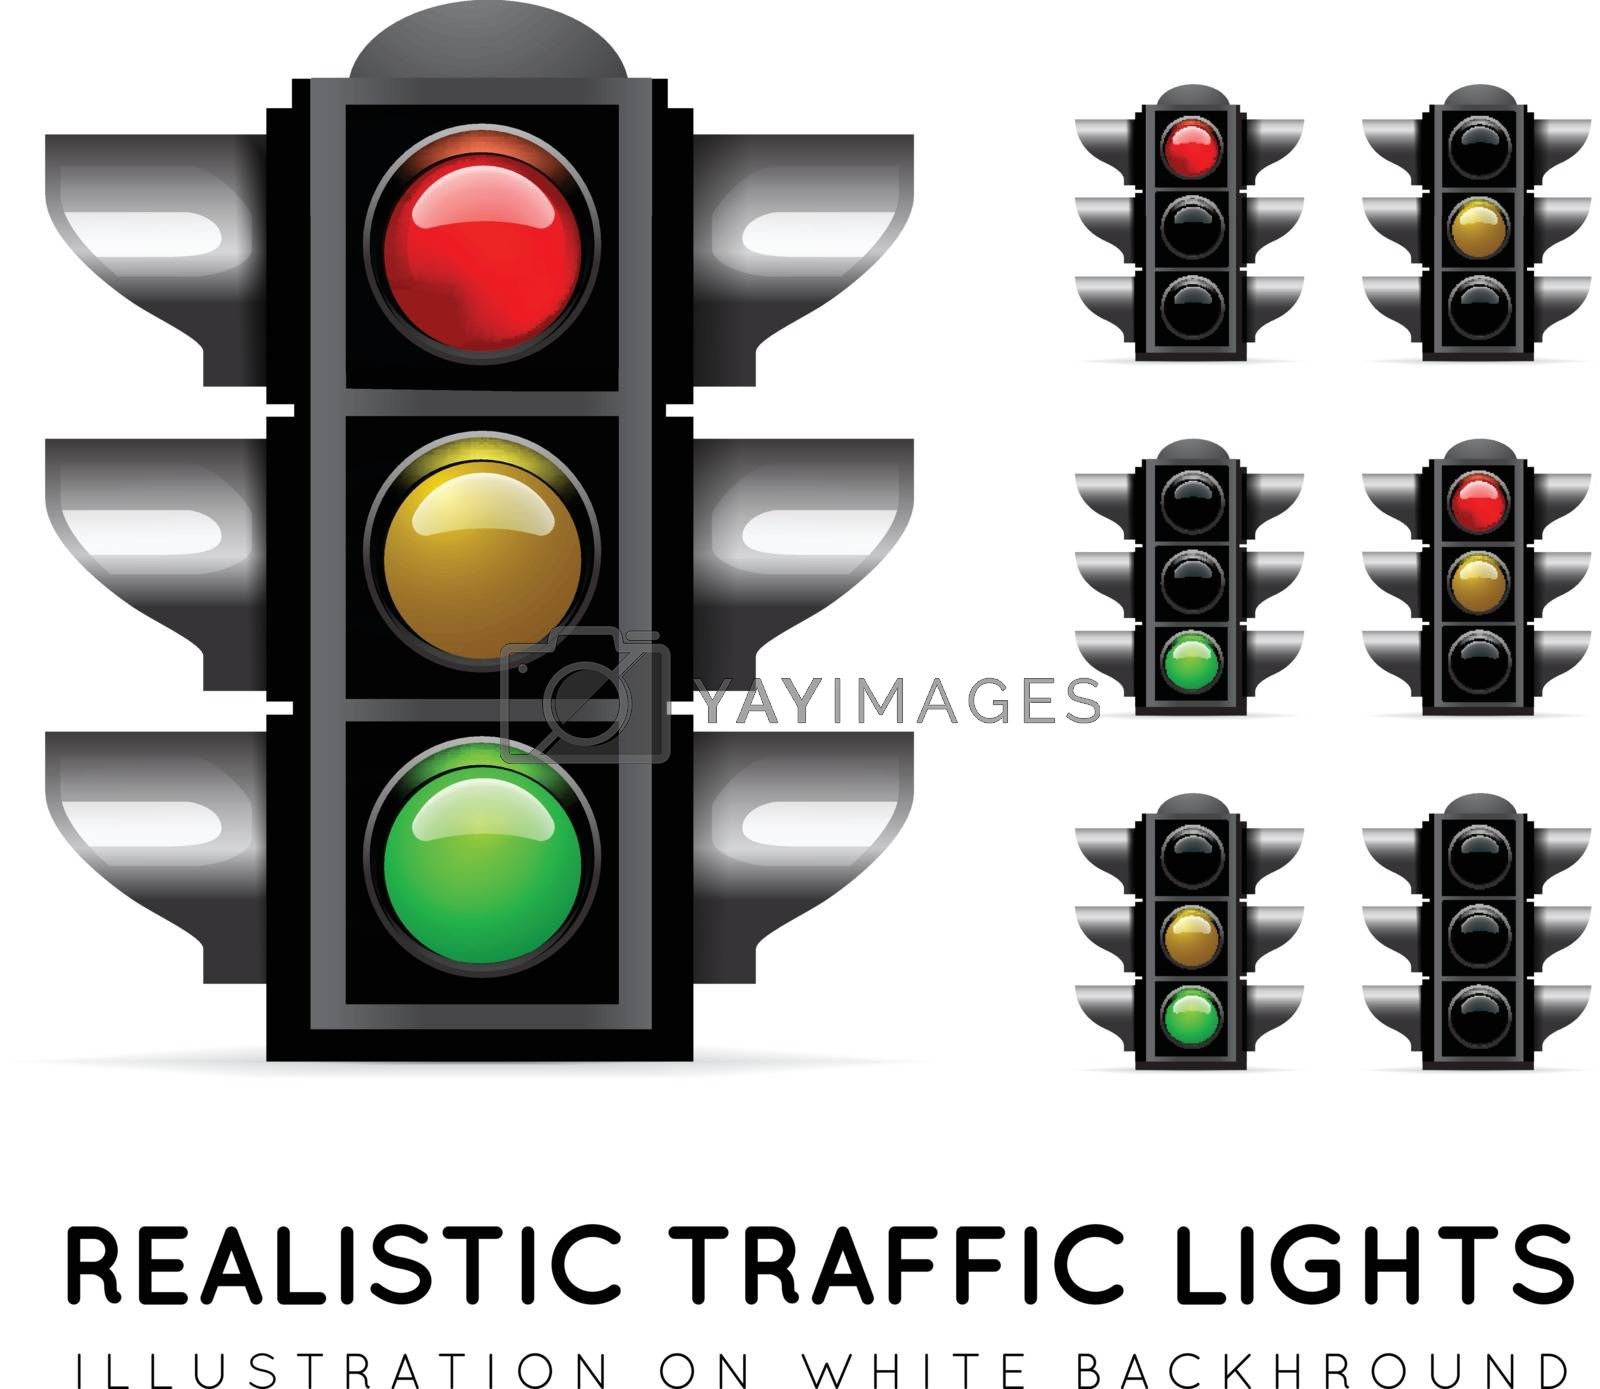 Realistic traffic light on a white background, in various color variations. Stoplight vector illustration